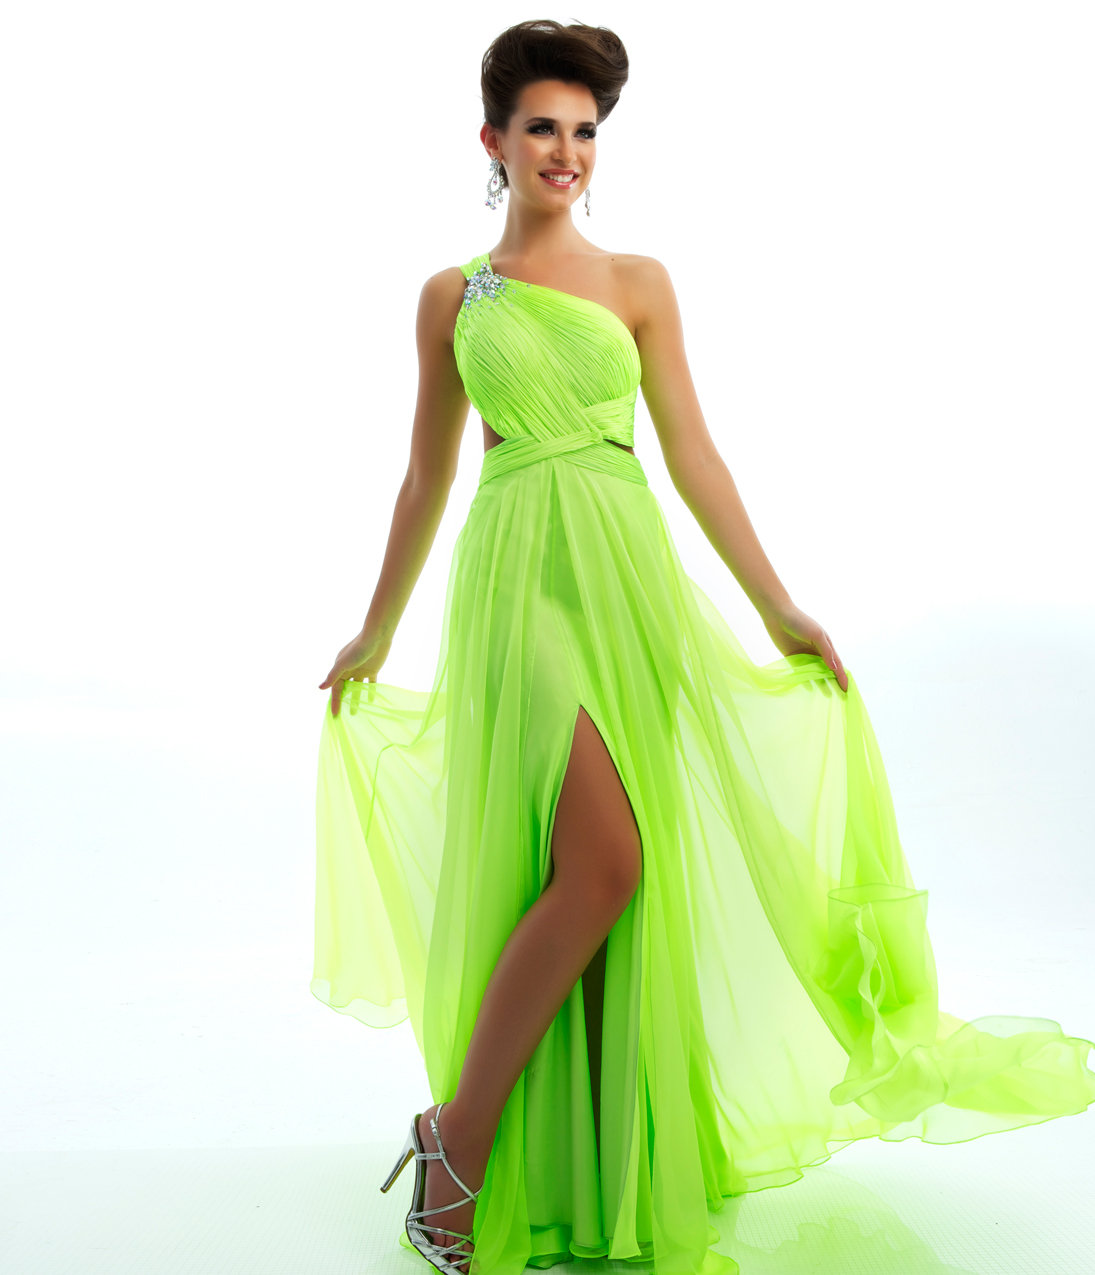 Neon wedding dresses gown and dress gallery neon wedding dresses photos ombrellifo Image collections